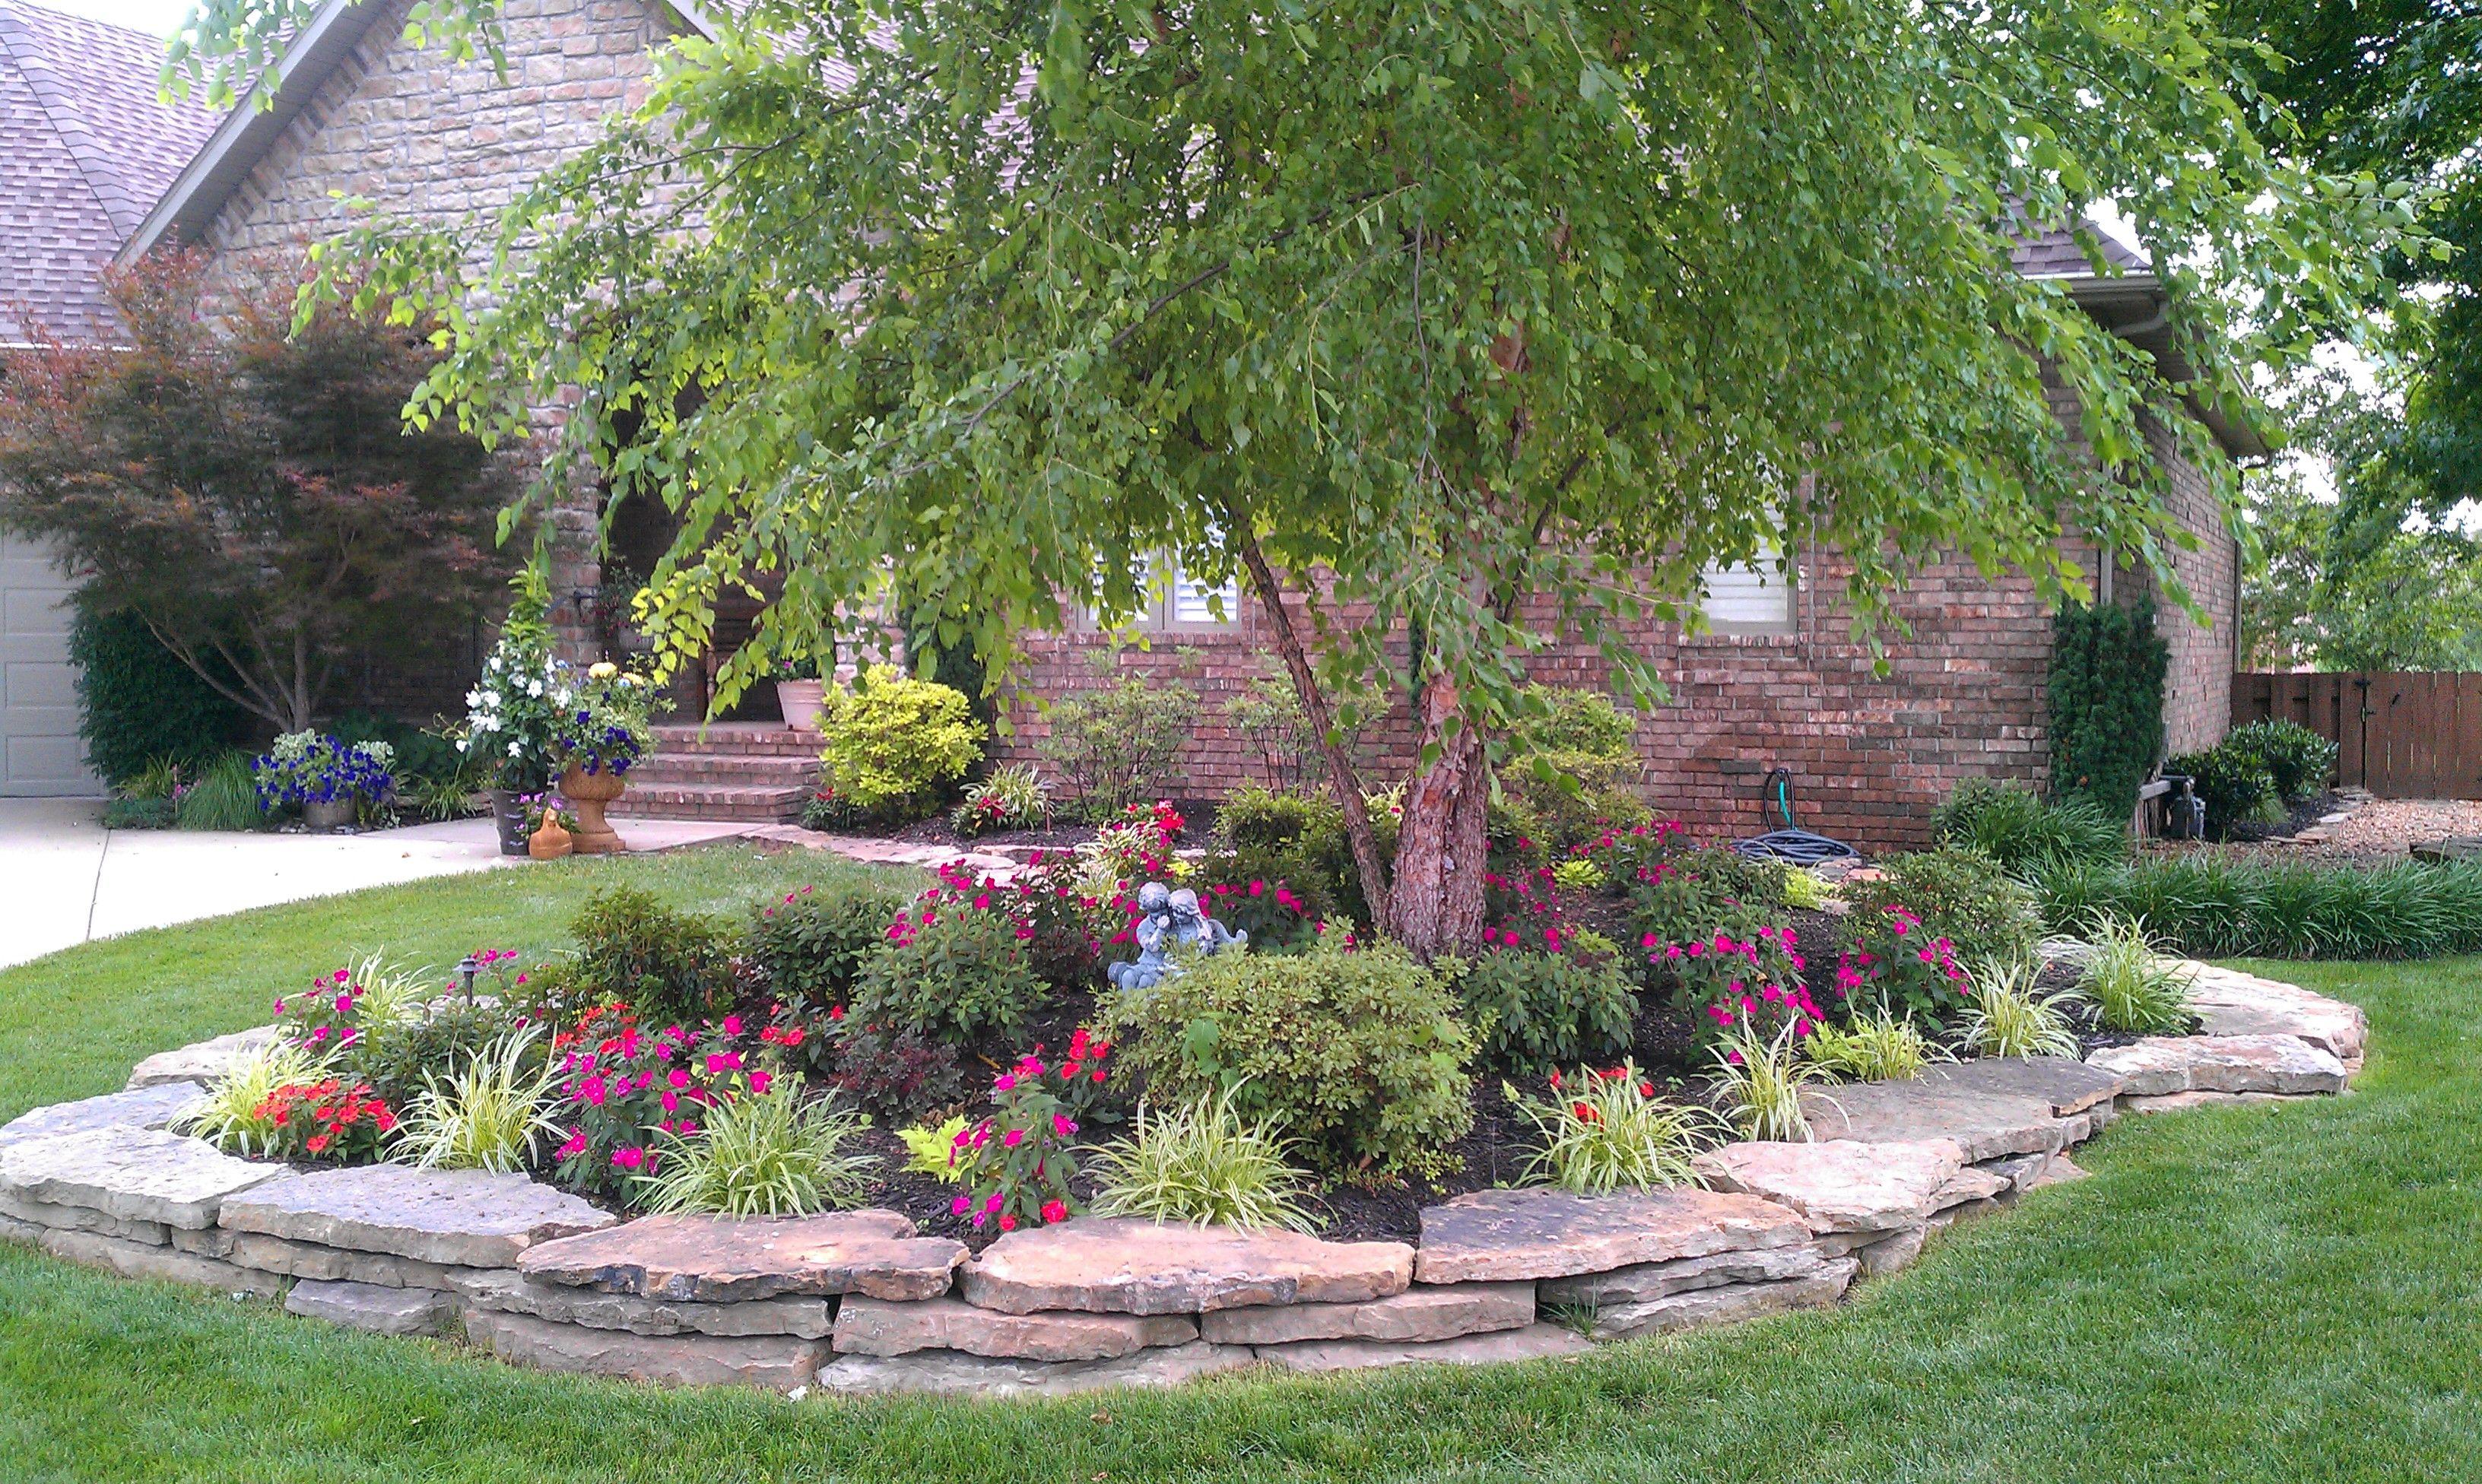 Diy landscape design for beginners landscape designs Landscape garden design ideas